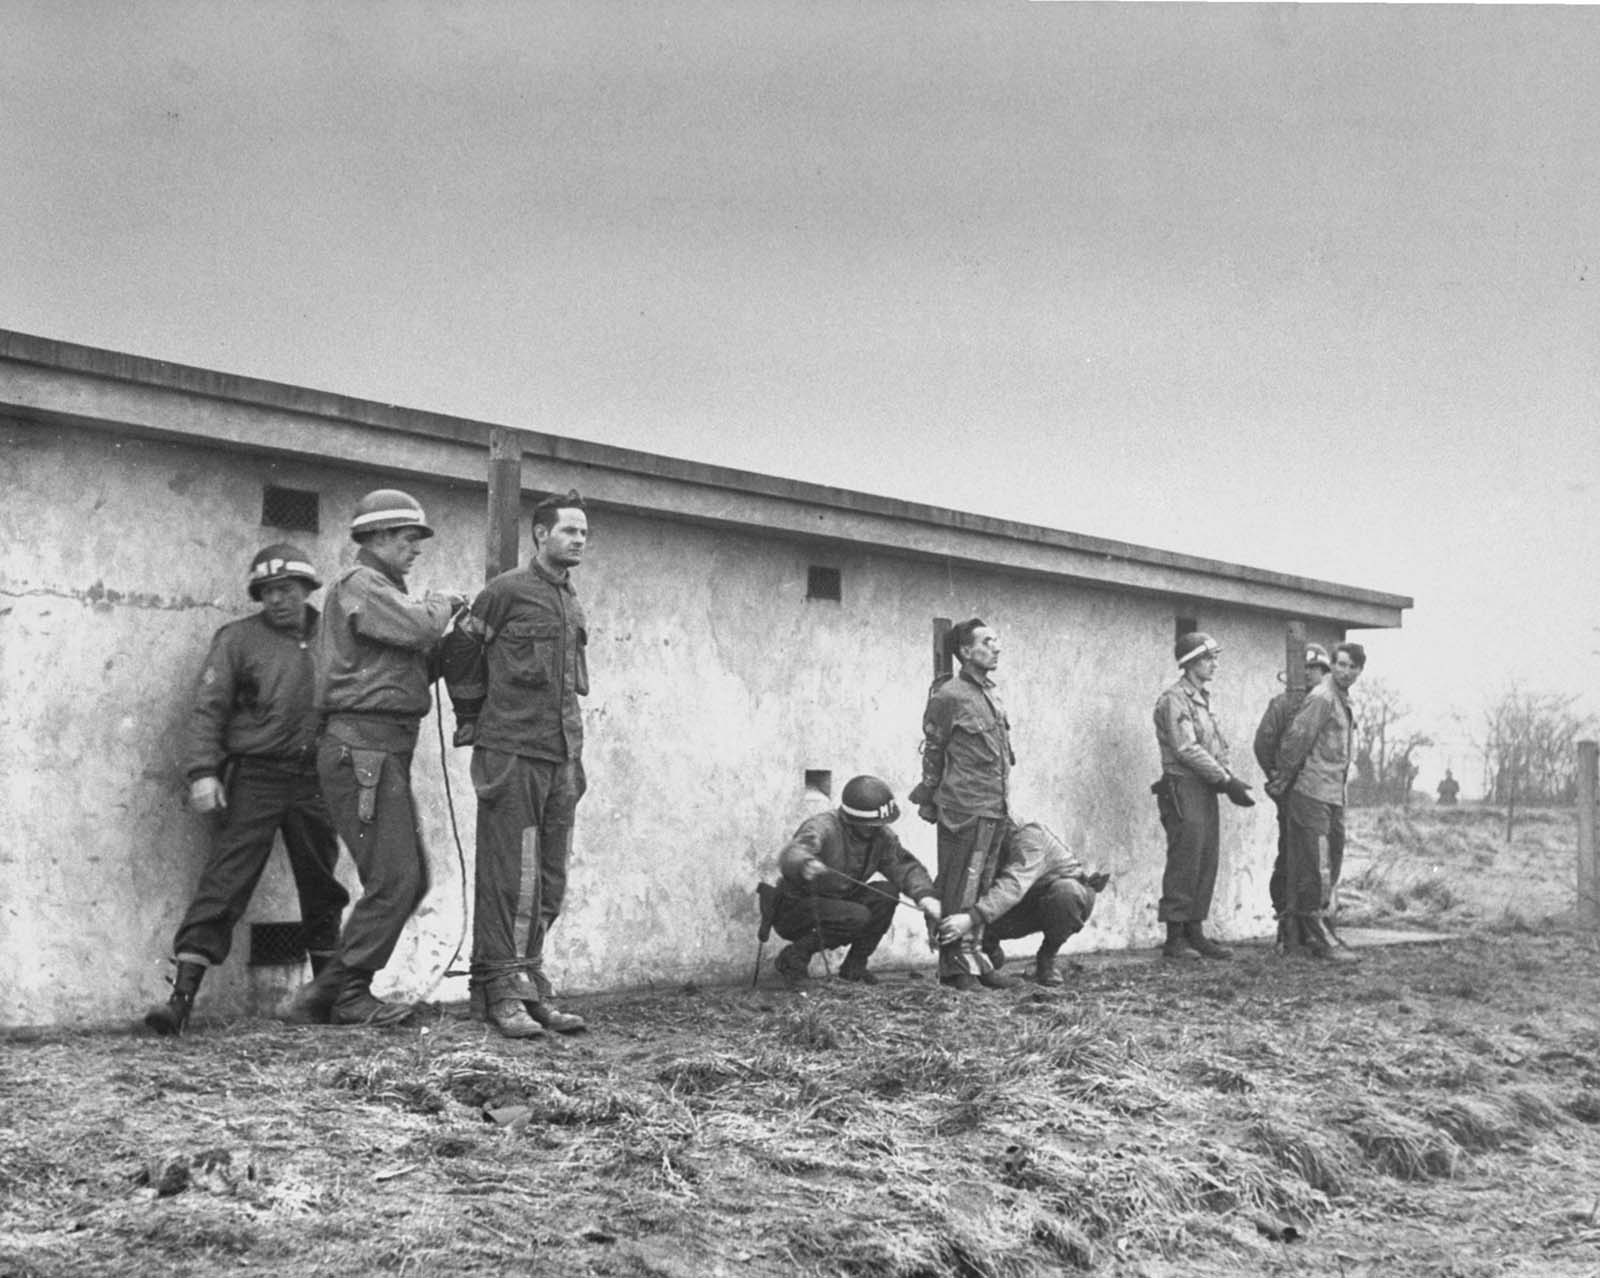 German infiltrators lined up for execution by firing squad after conviction by a military court for wearing U.S. uniforms during the Battle of the Bulge. December 23, 1944.